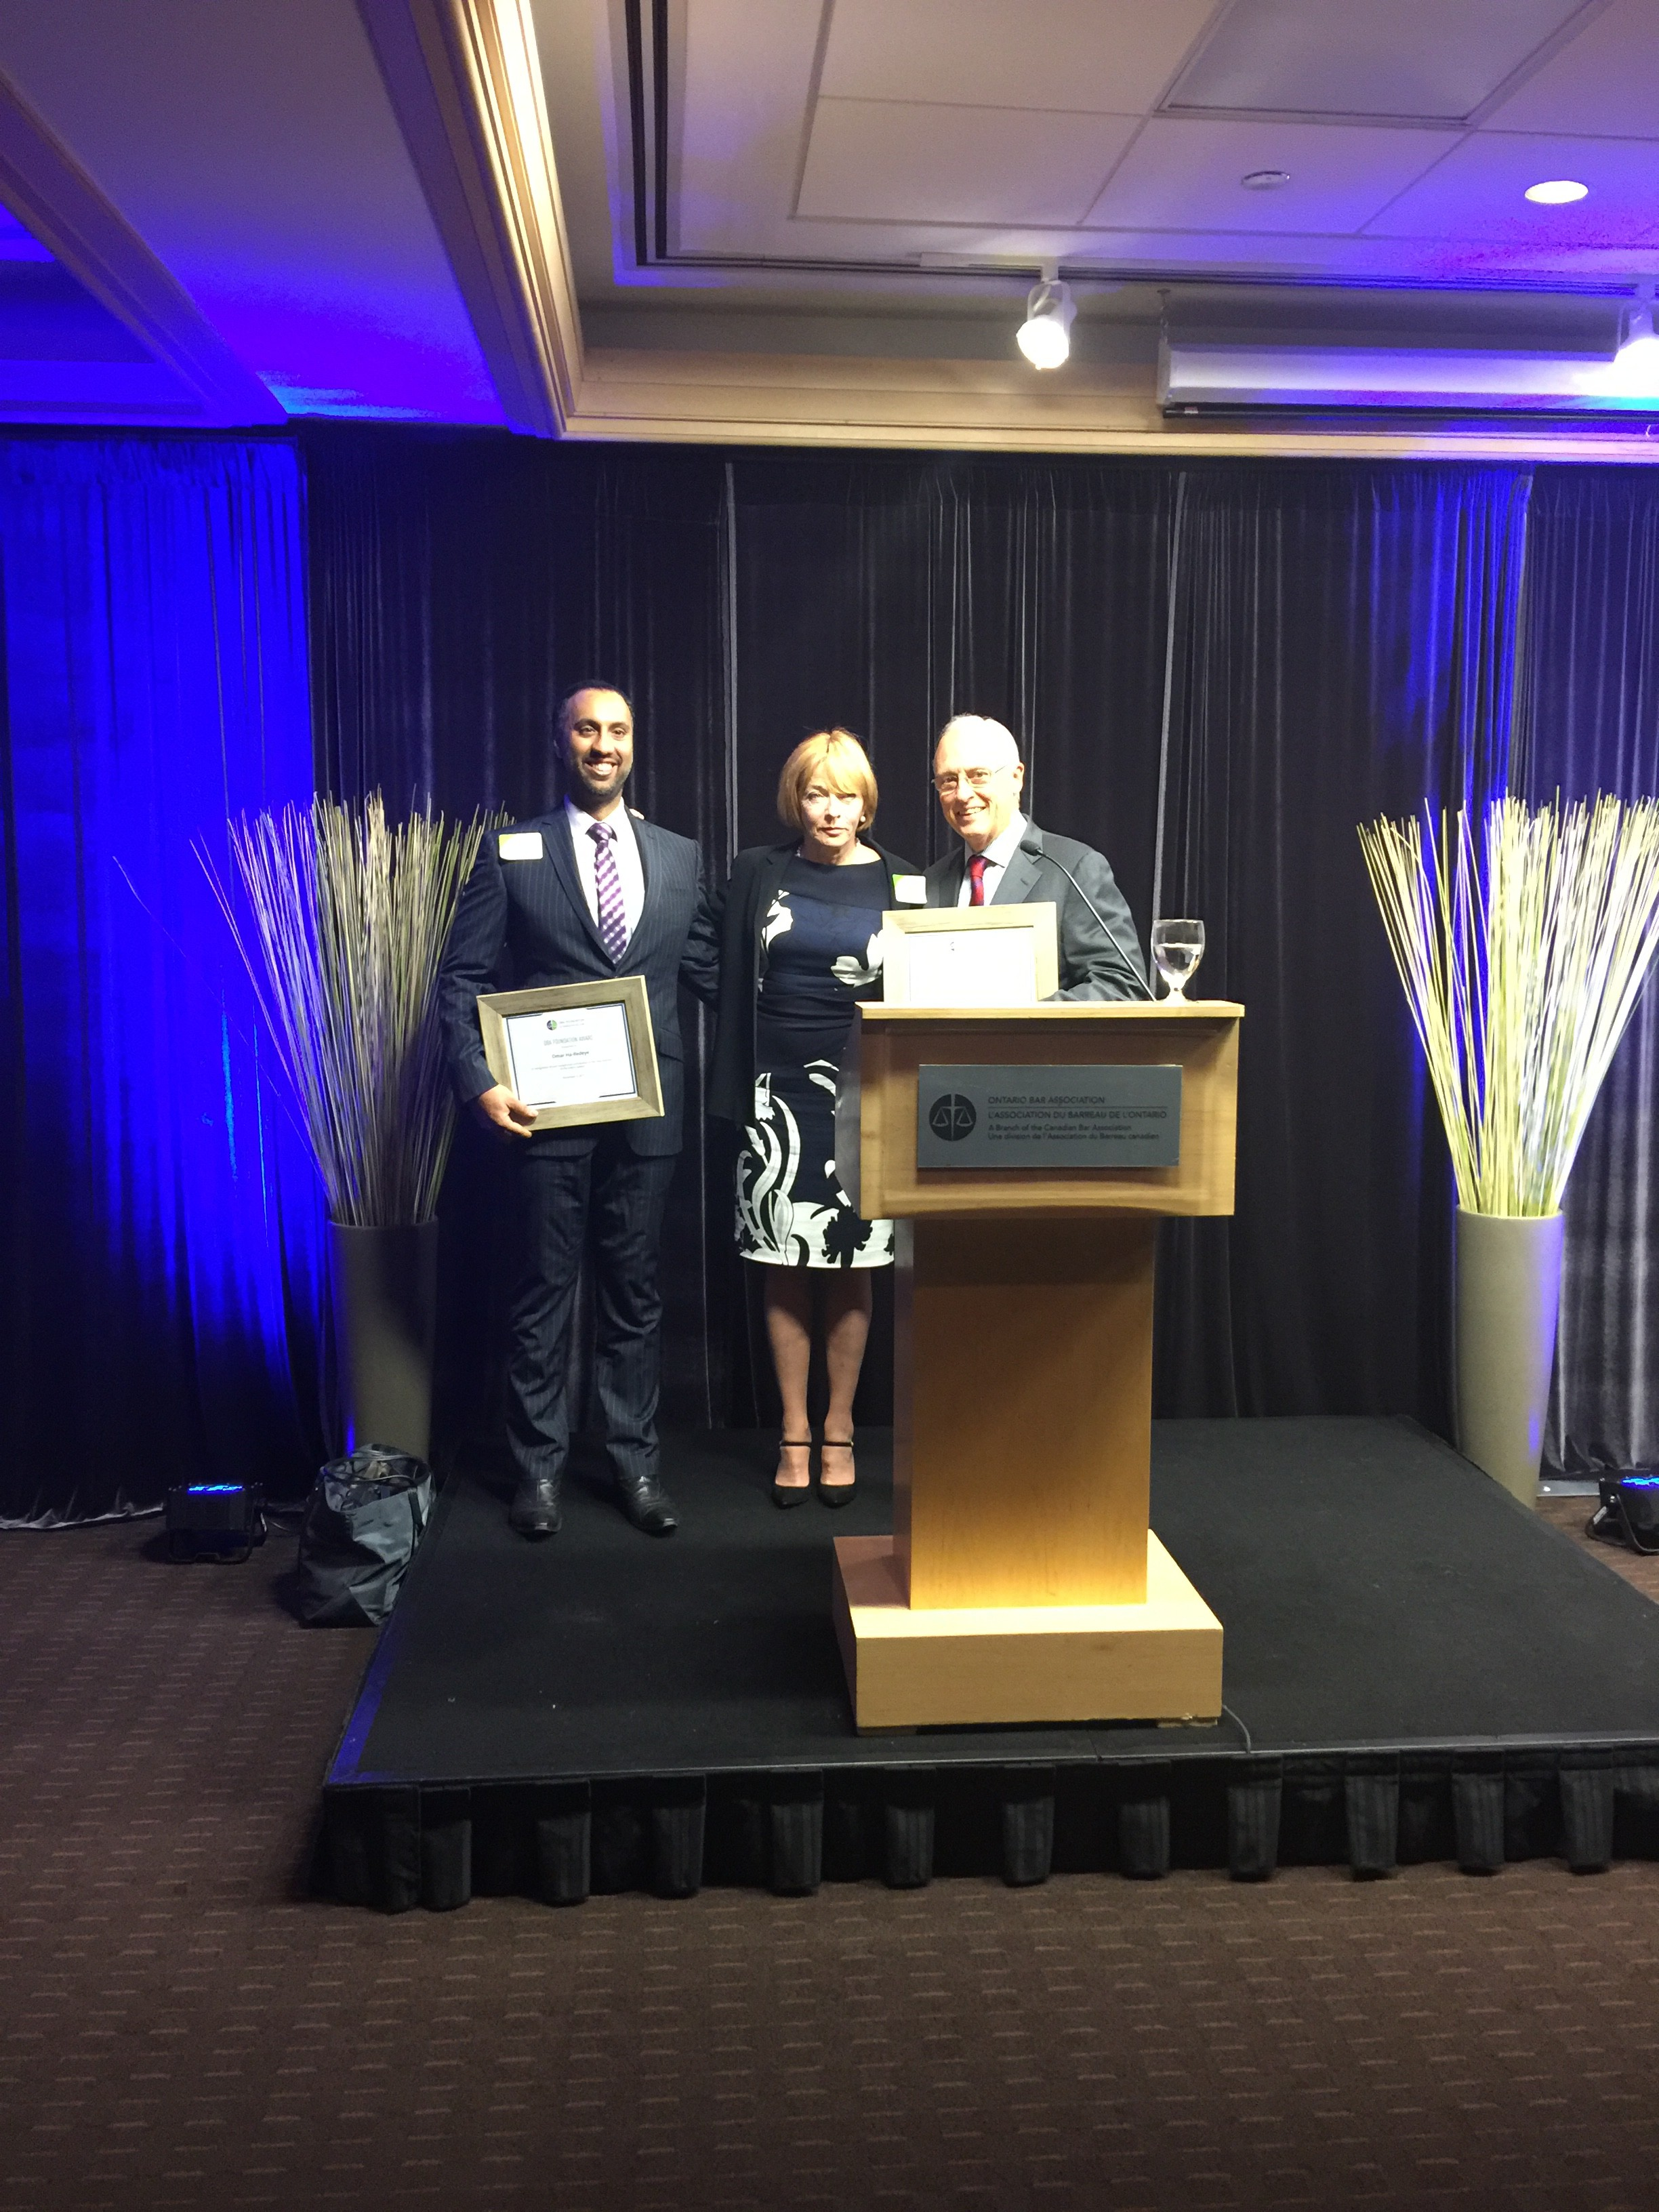 Recipients of the OBA Foundation Award, Omar Ha-Redeye (left), and Hon. Stephen Goudge (right), as presented by the Hon. Gloria Epstein.